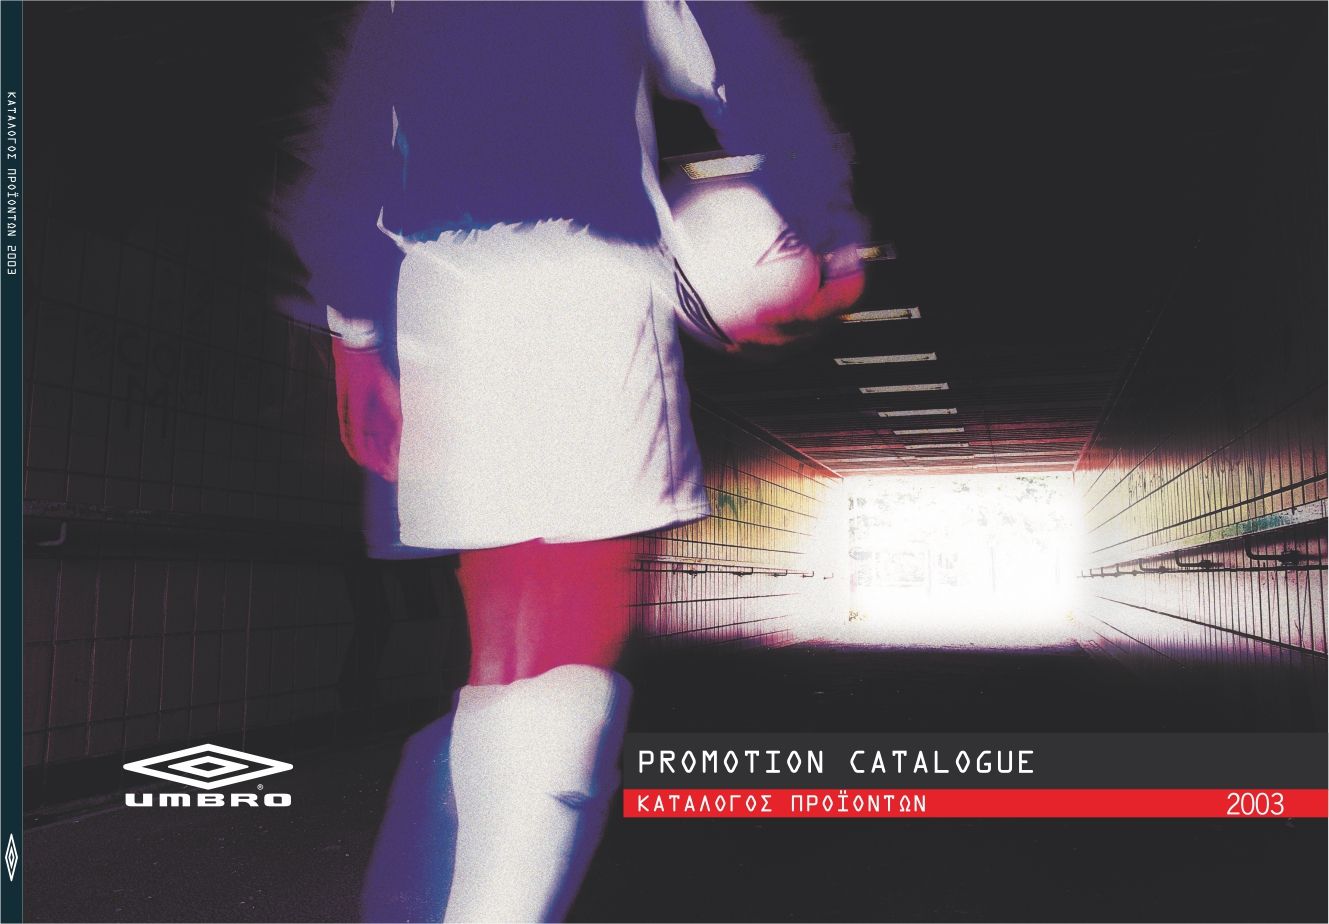 Catalogue cover page